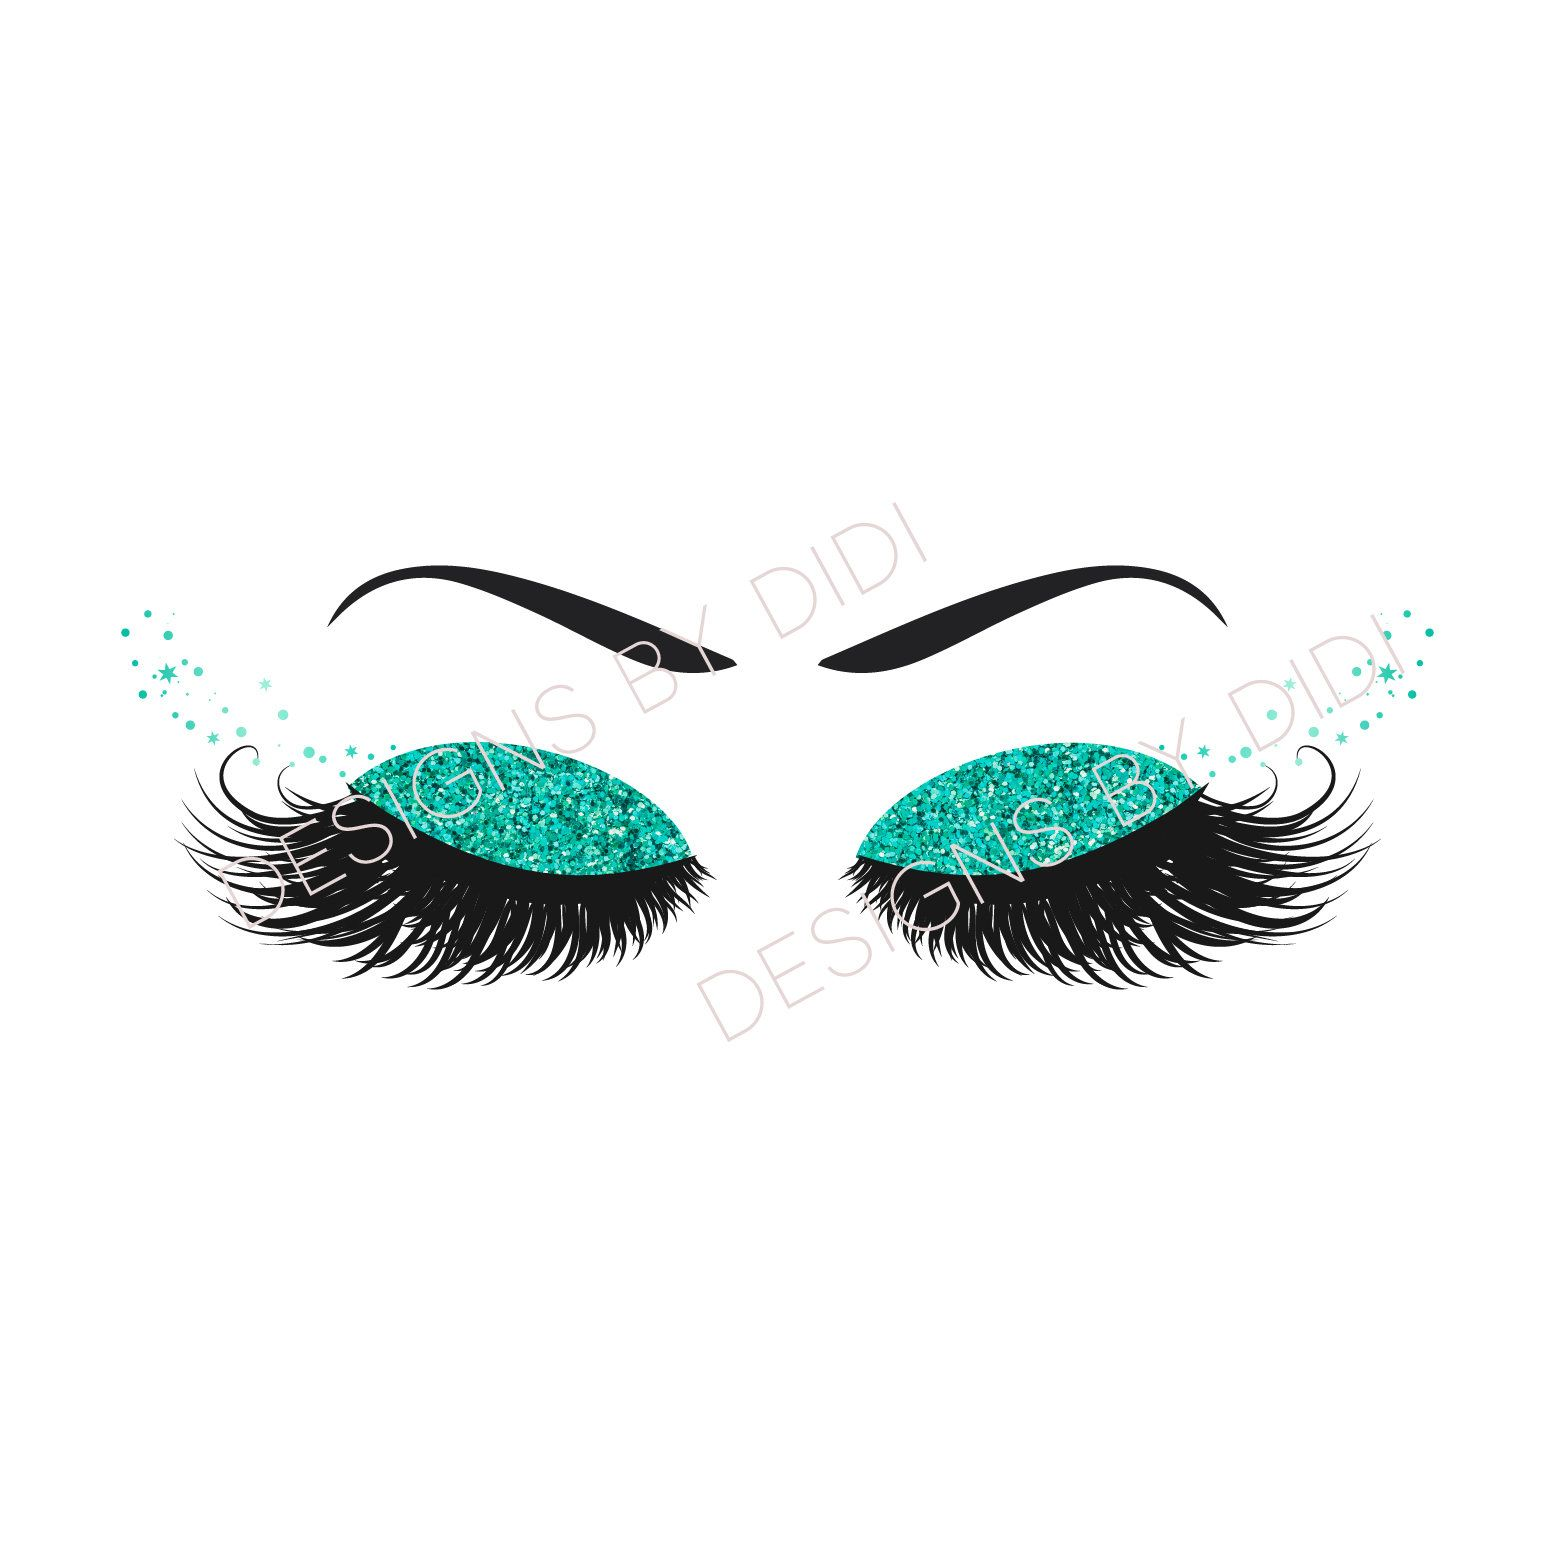 Eyelash logo clipart svg library stock Instant Download, Lash Clipart, glitter teal lashes clip art ... svg library stock